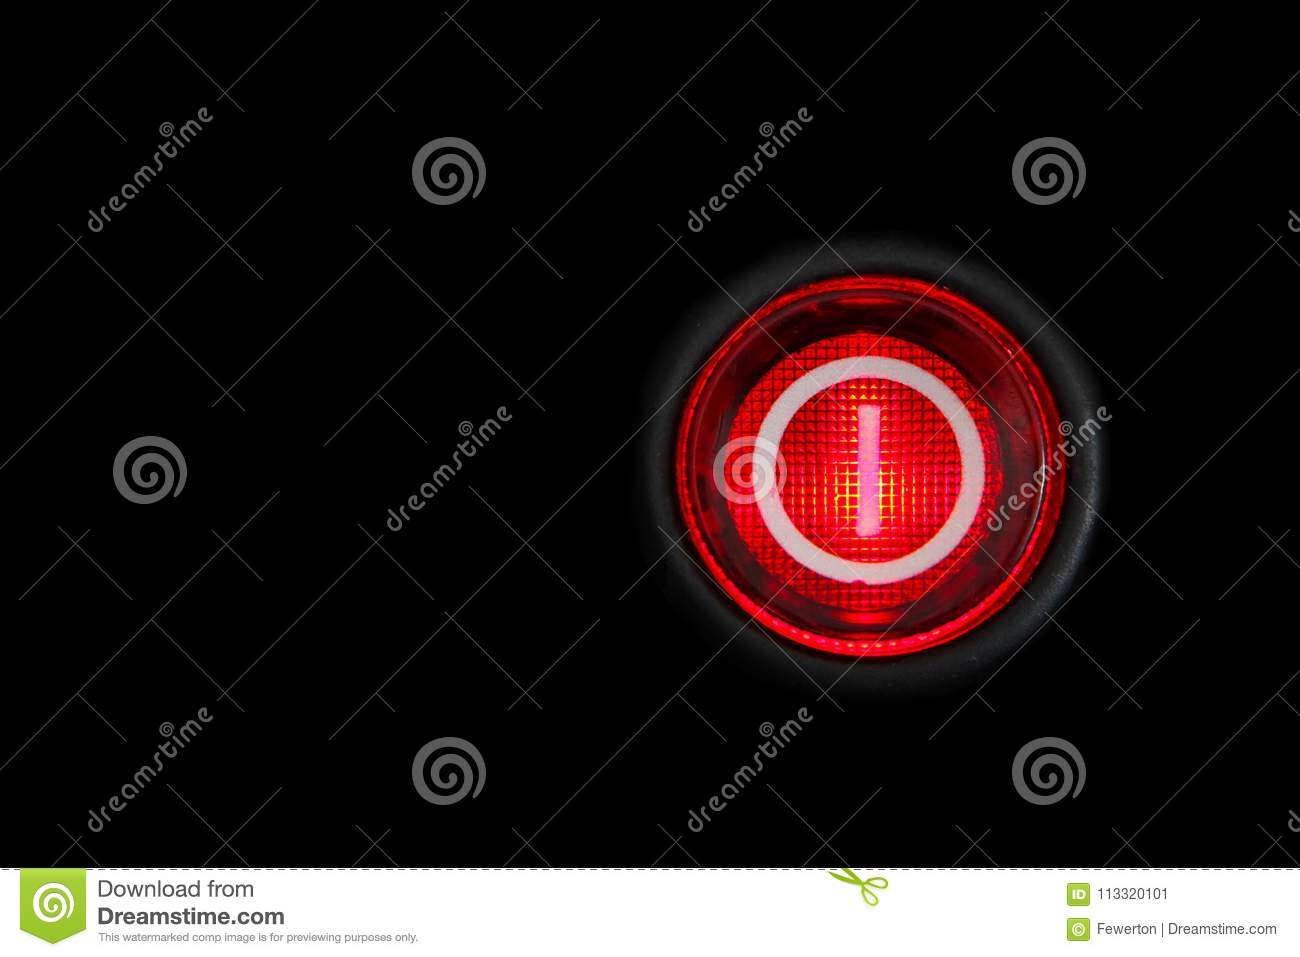 Round red power on and off button or switch with retro illumination glowing in the dark macro photography